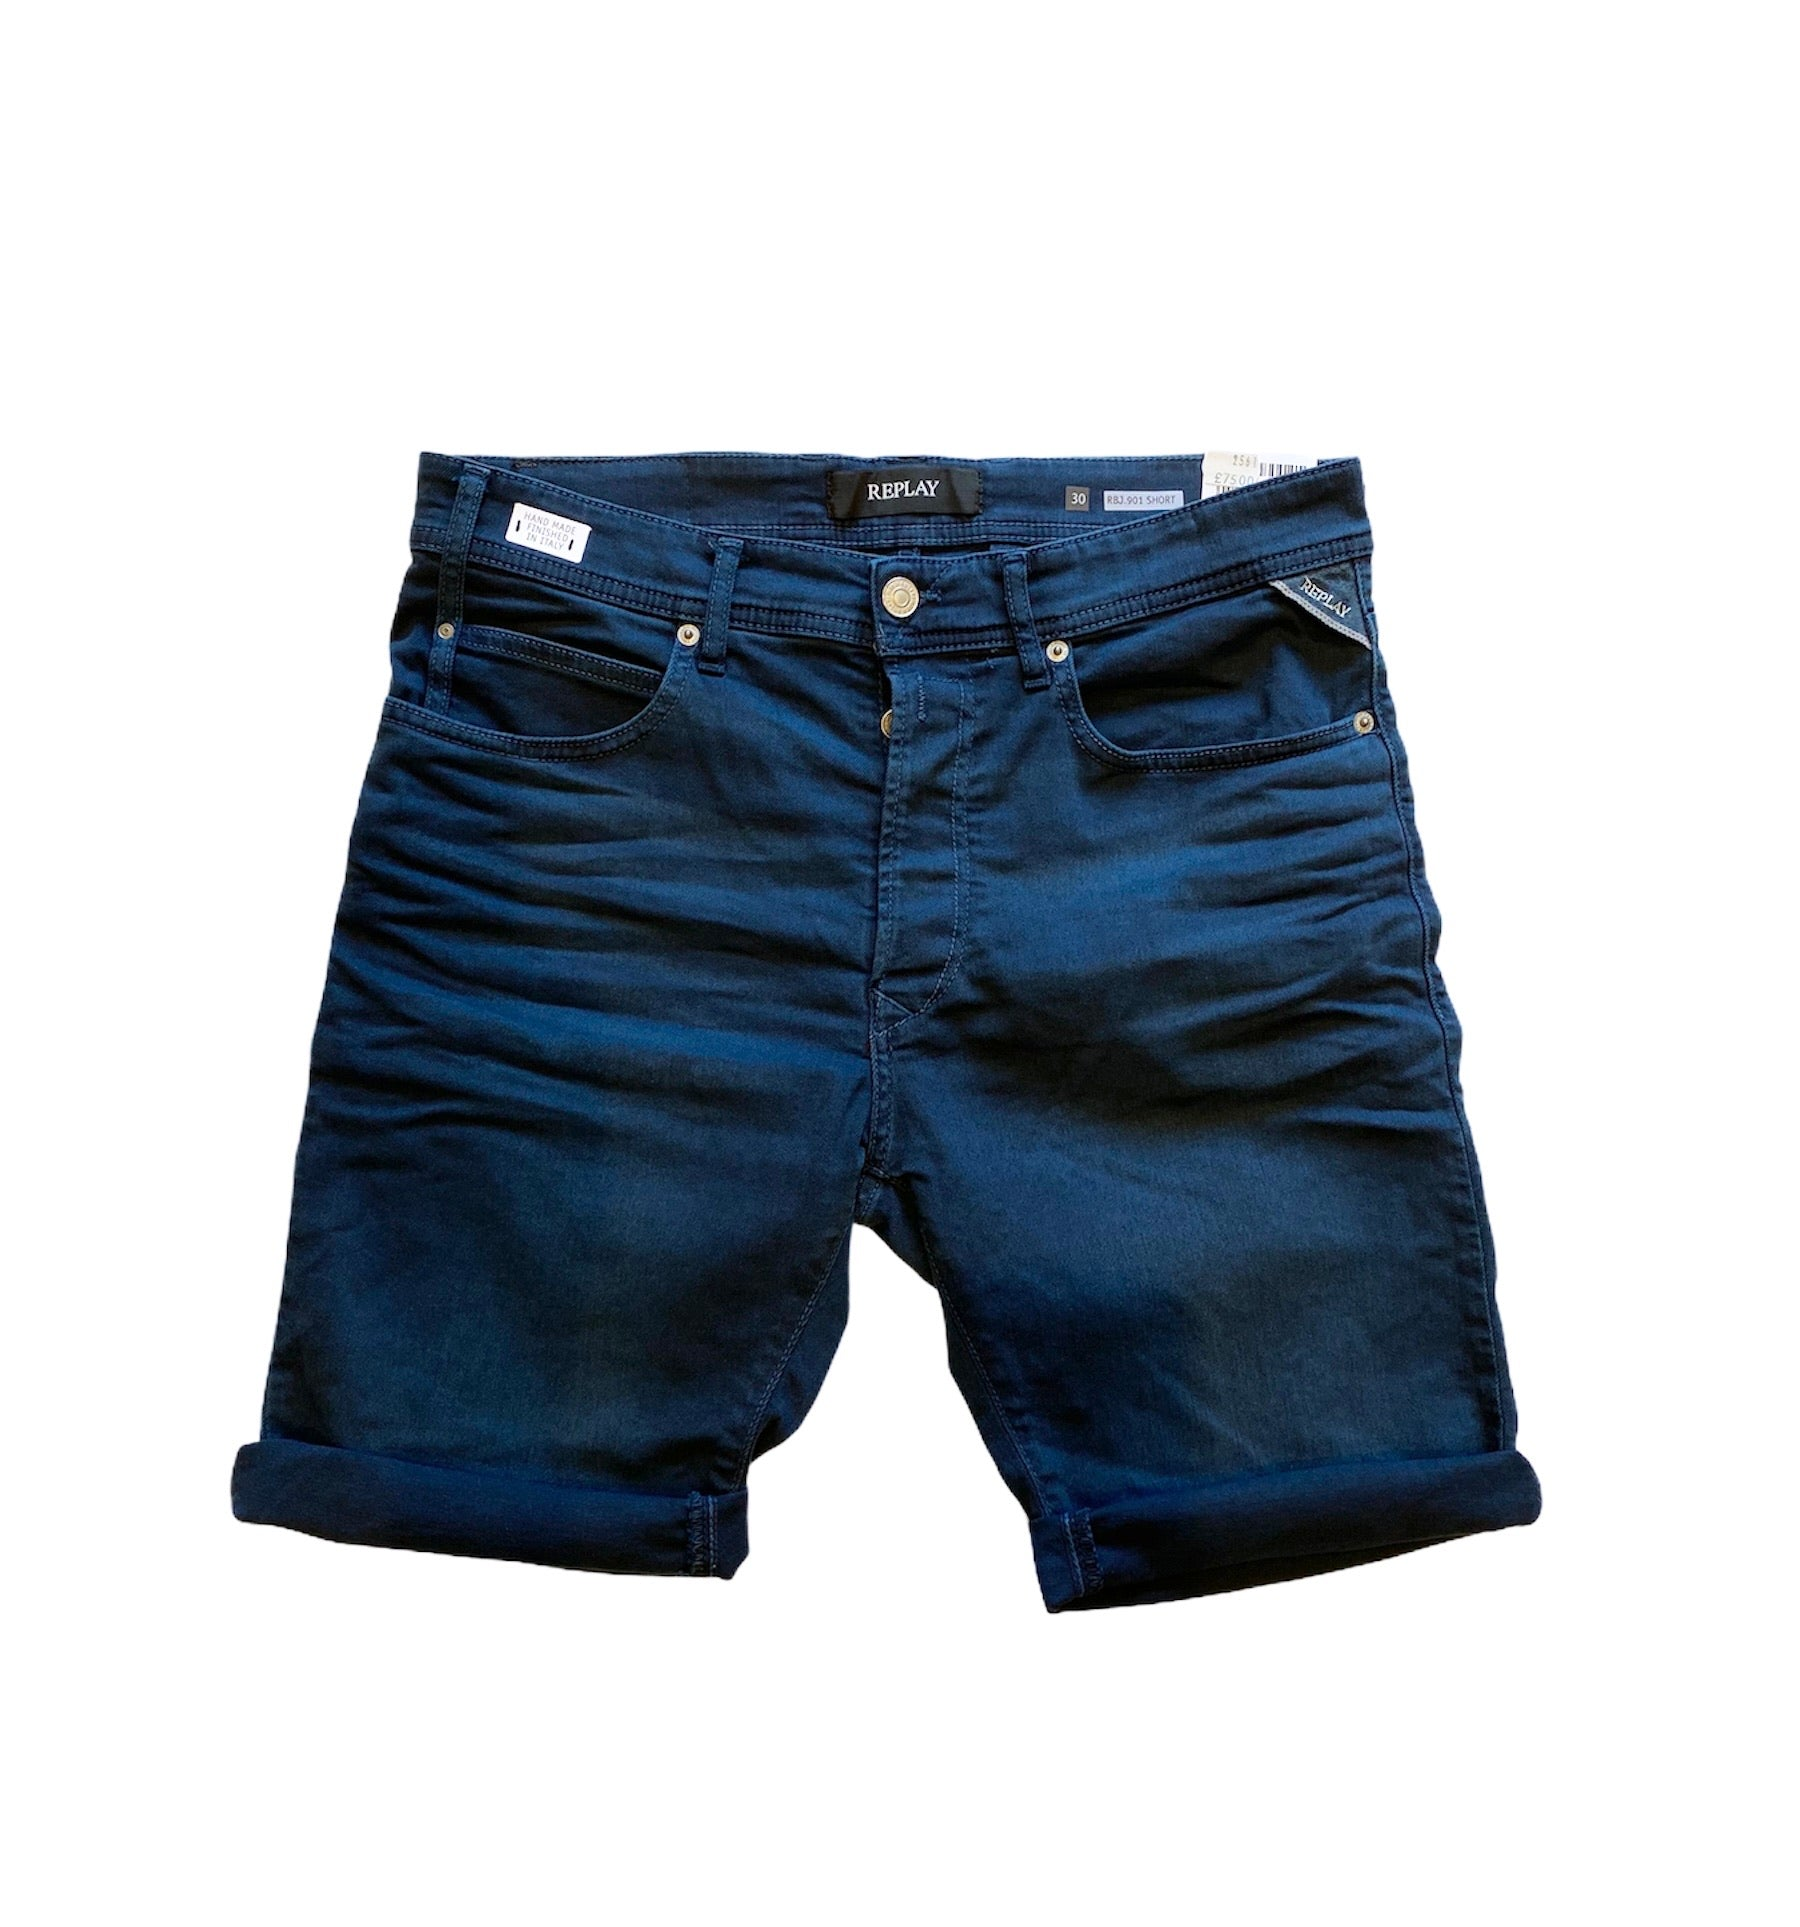 Replay Garment Dyed Stretch Denim Shorts Navy